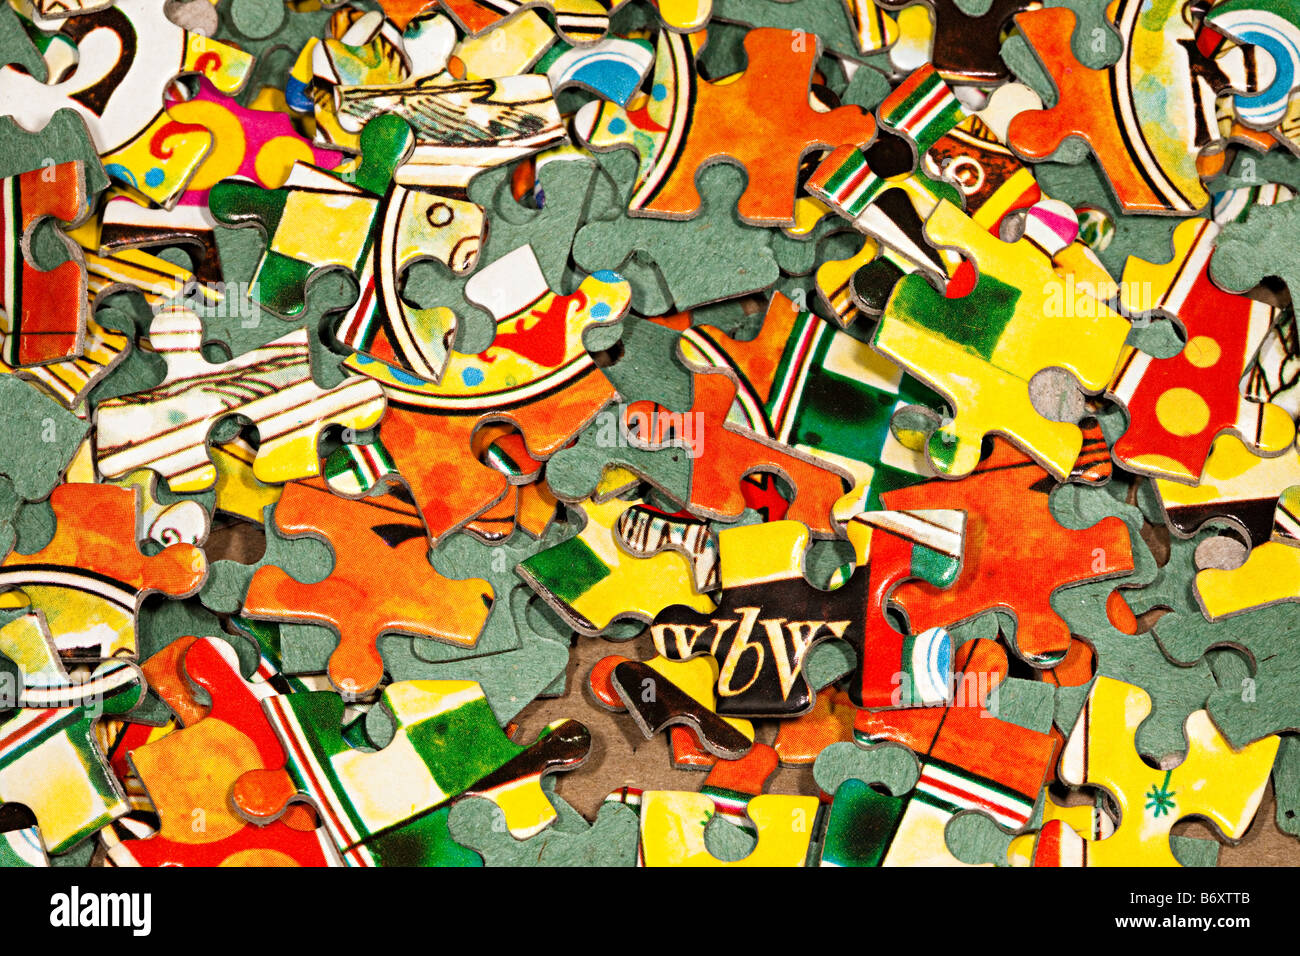 Pieces of jigsaw puzzle - Stock Image